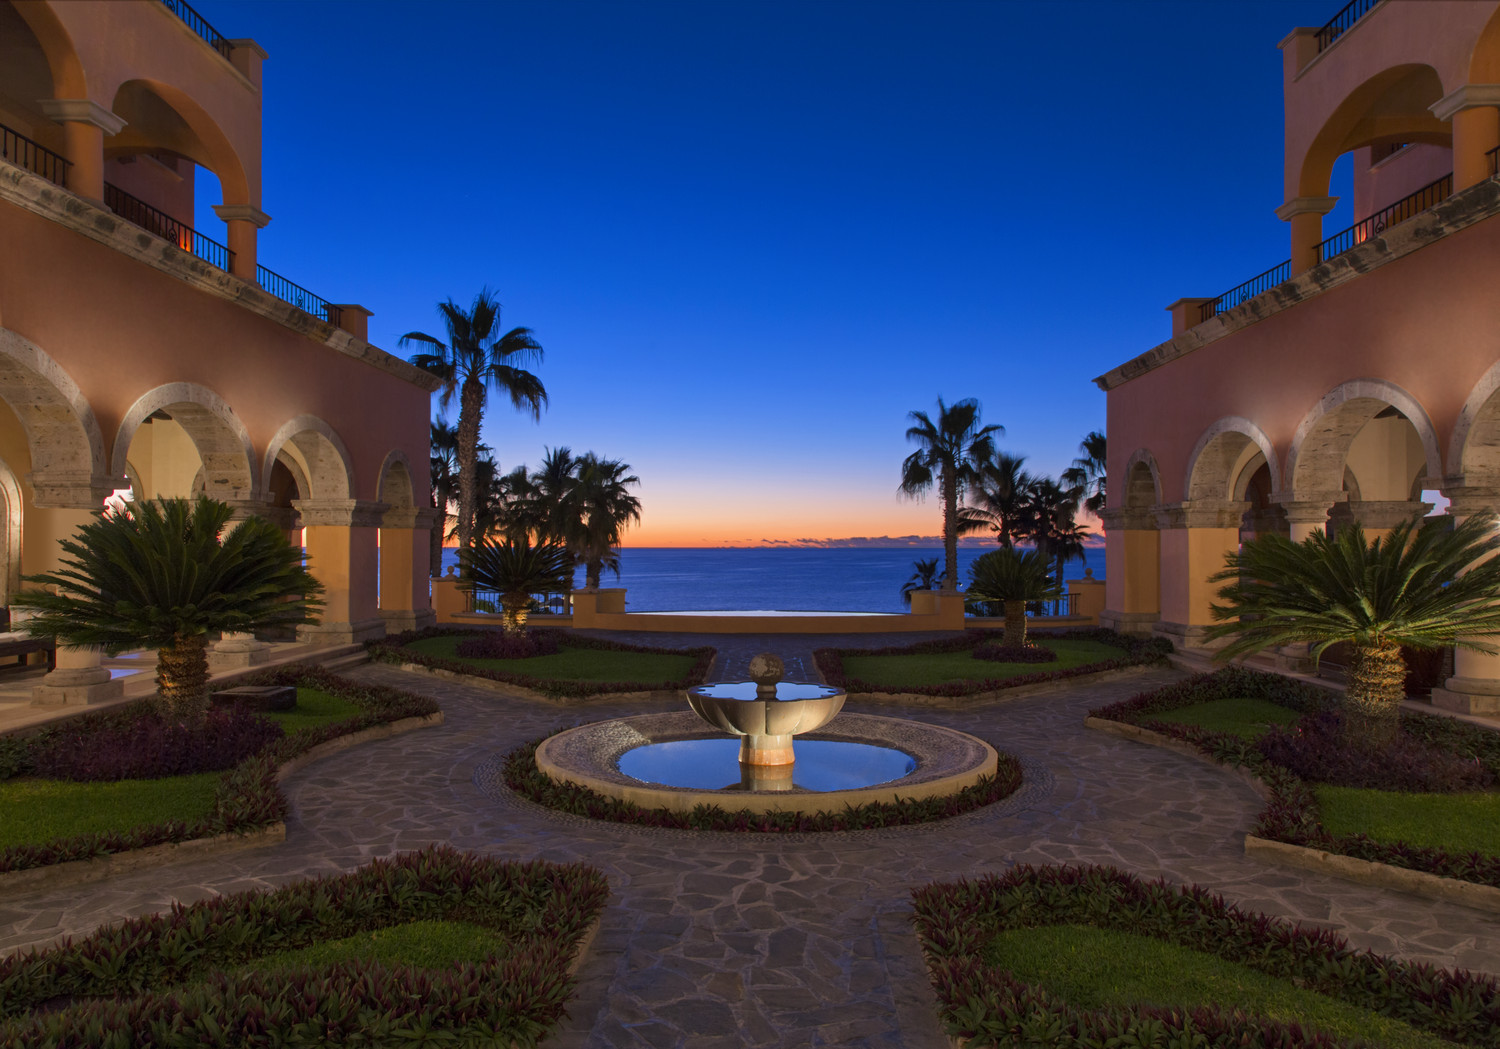 Ocean view courtyard at Sheraton Hacienda del Mar Los Cabos